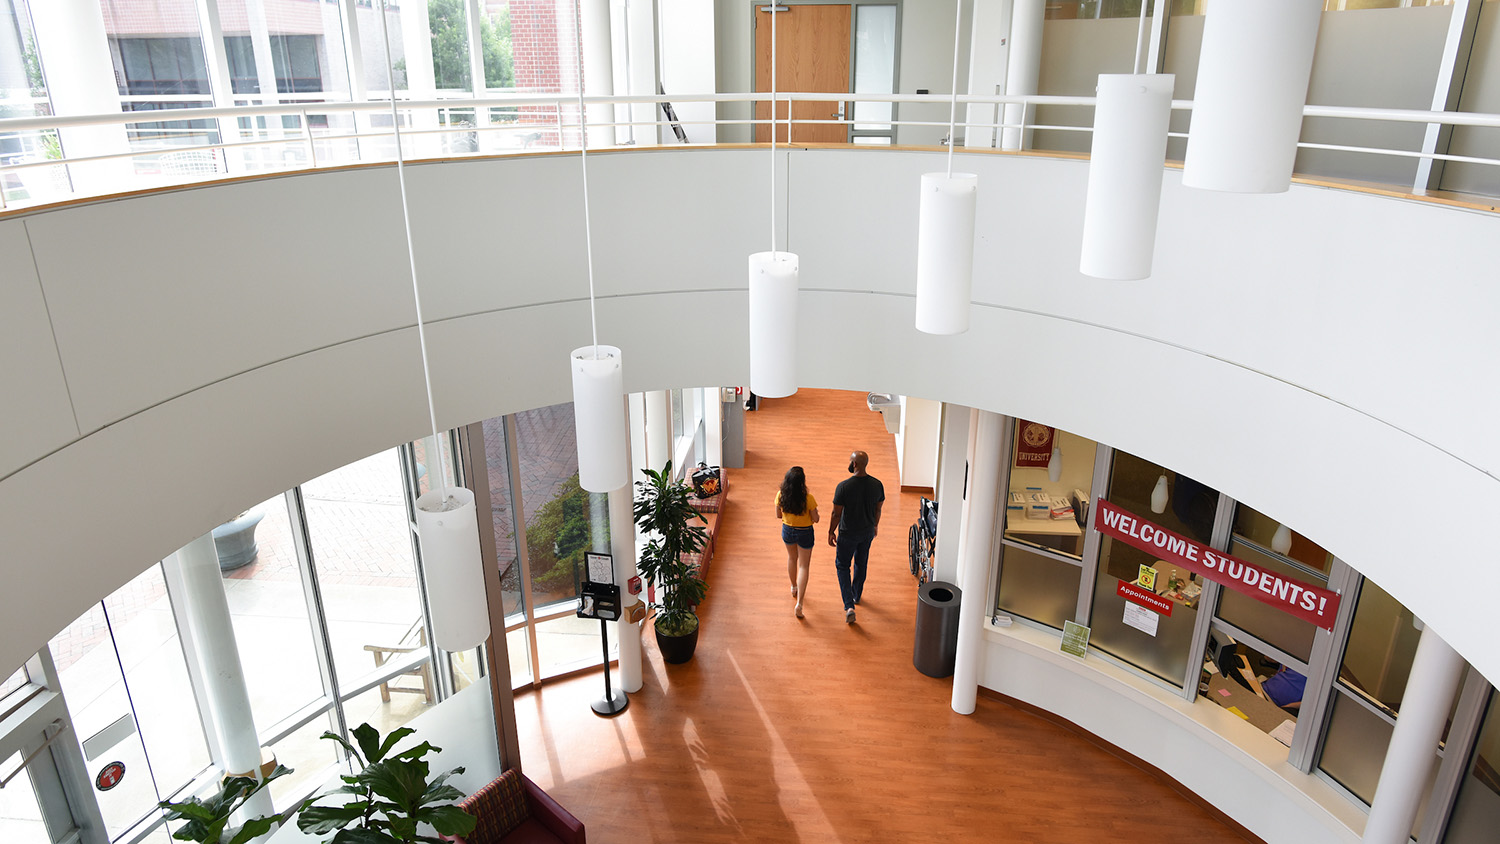 The lobby of Student Health Services, located on Cates Avenue.